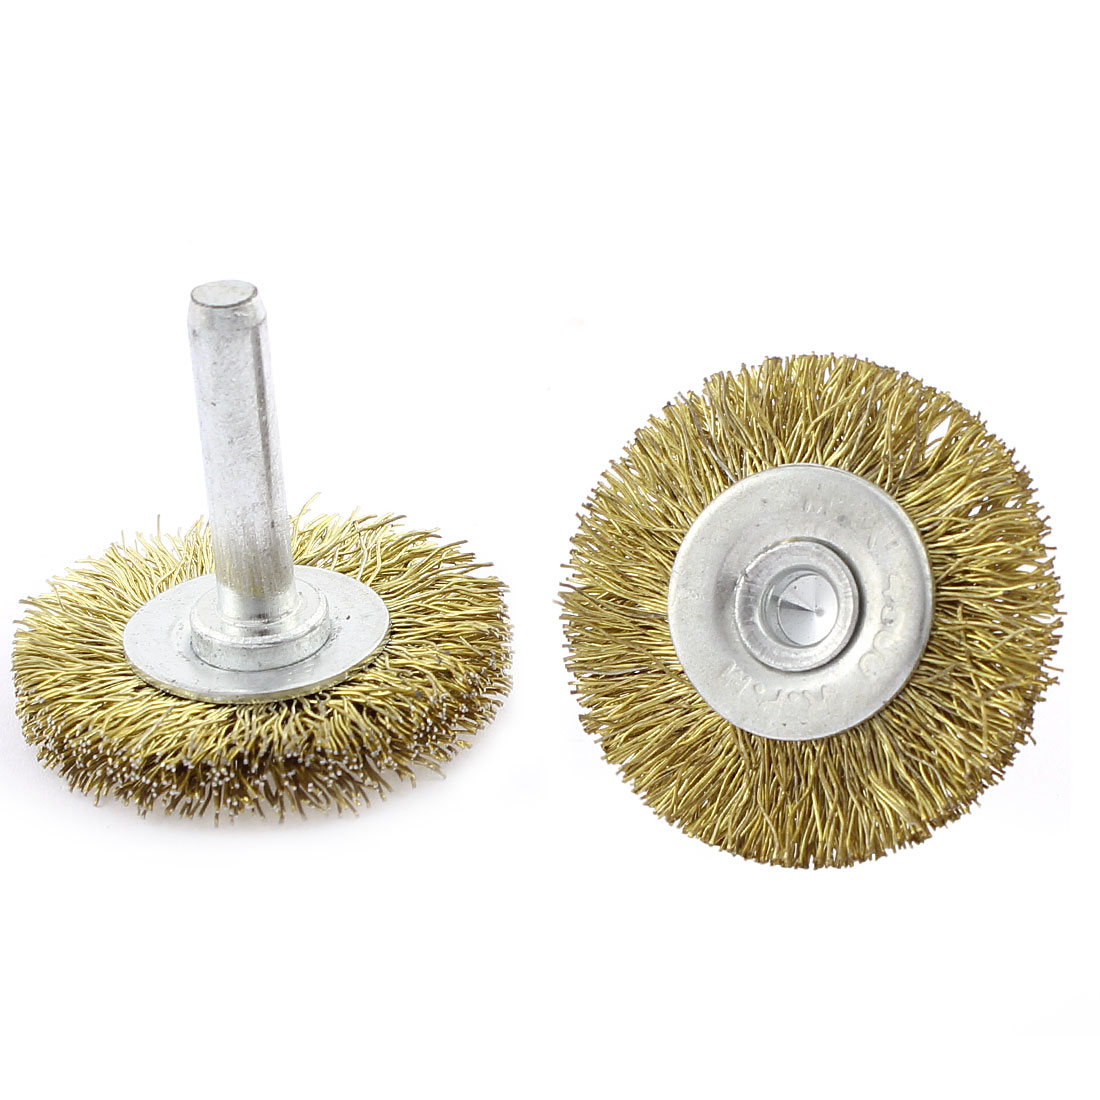 2pcs 39 x 6mm Steel Wire Polishing Buffing Wheels Grinding Brushes Rotary Tool